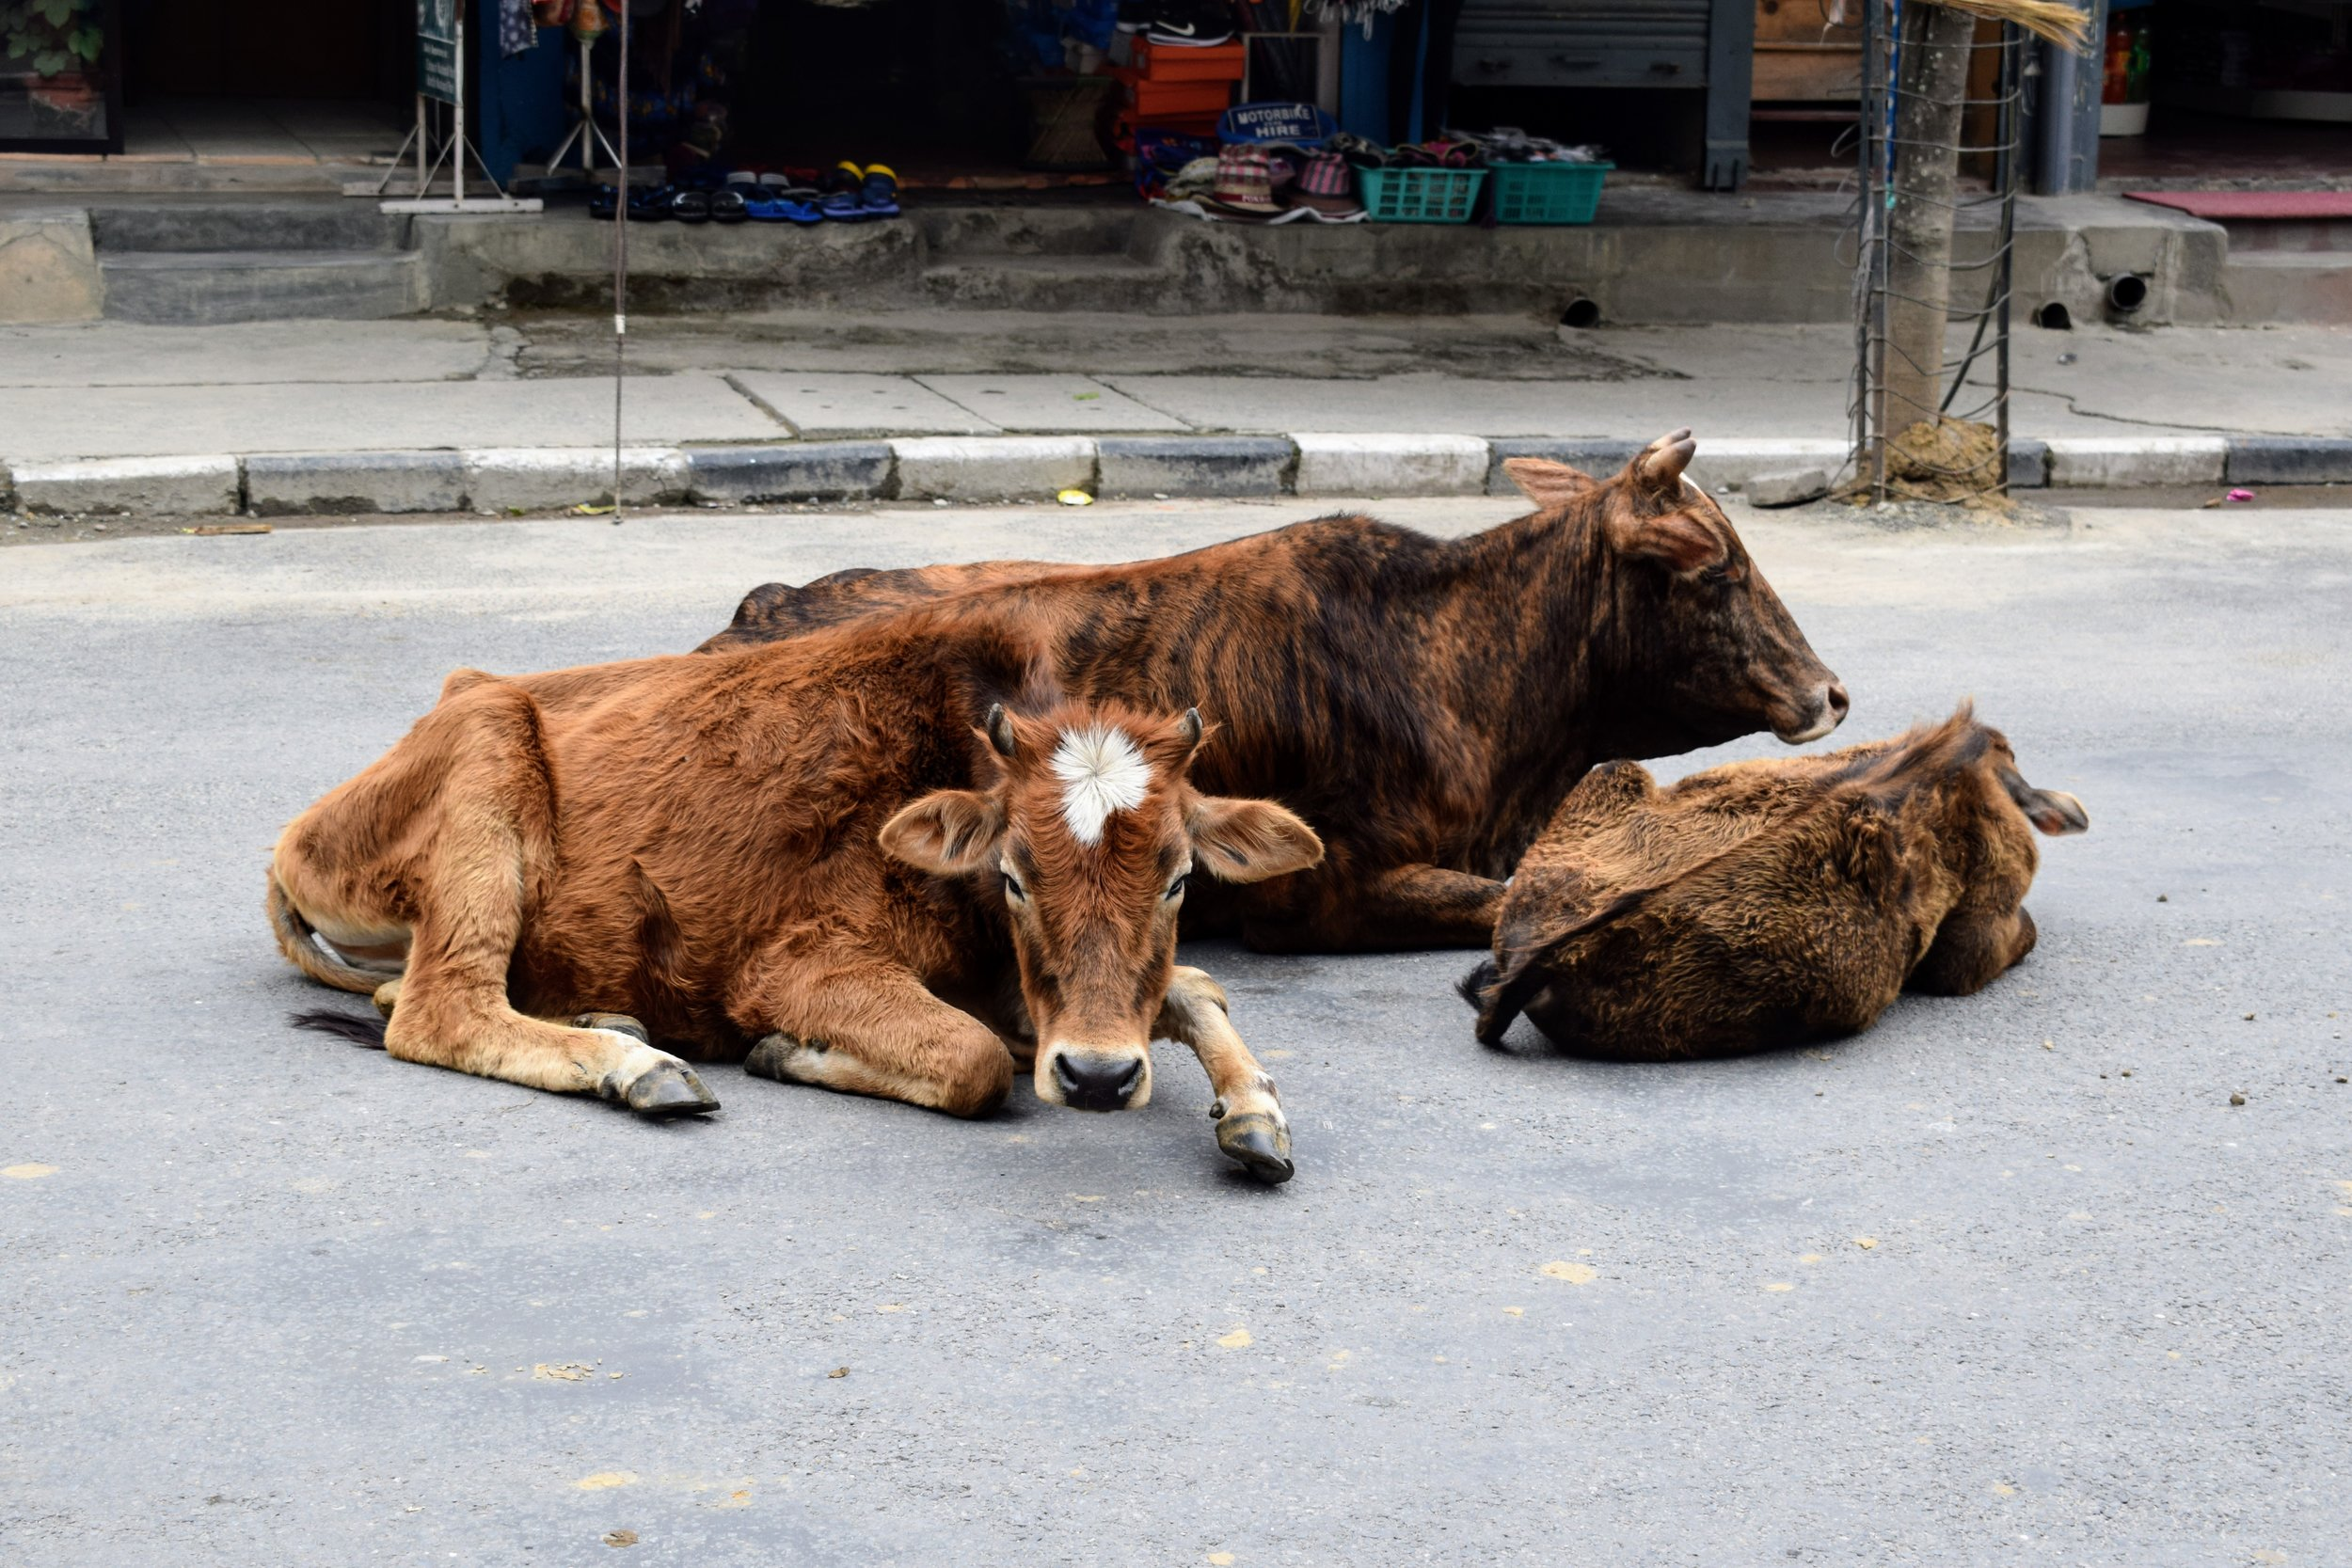 Three cows asleep on the street in Pokhara, Nepal.